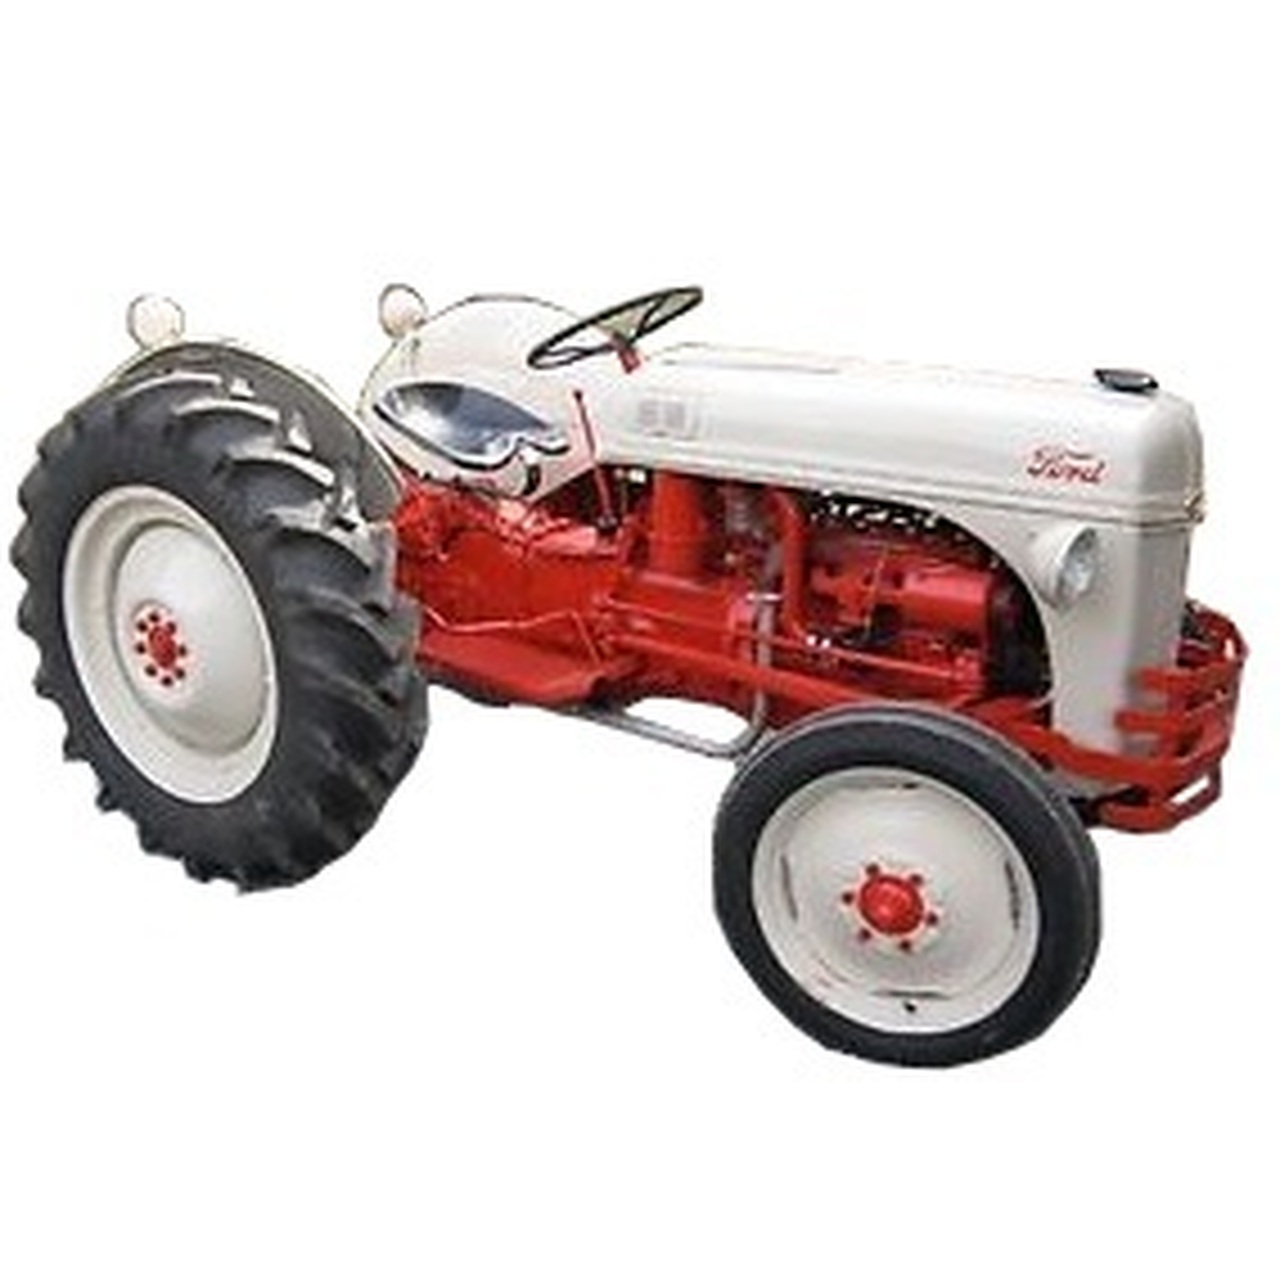 Ford Tractor Parts (Models Built from 1939 - 1964)